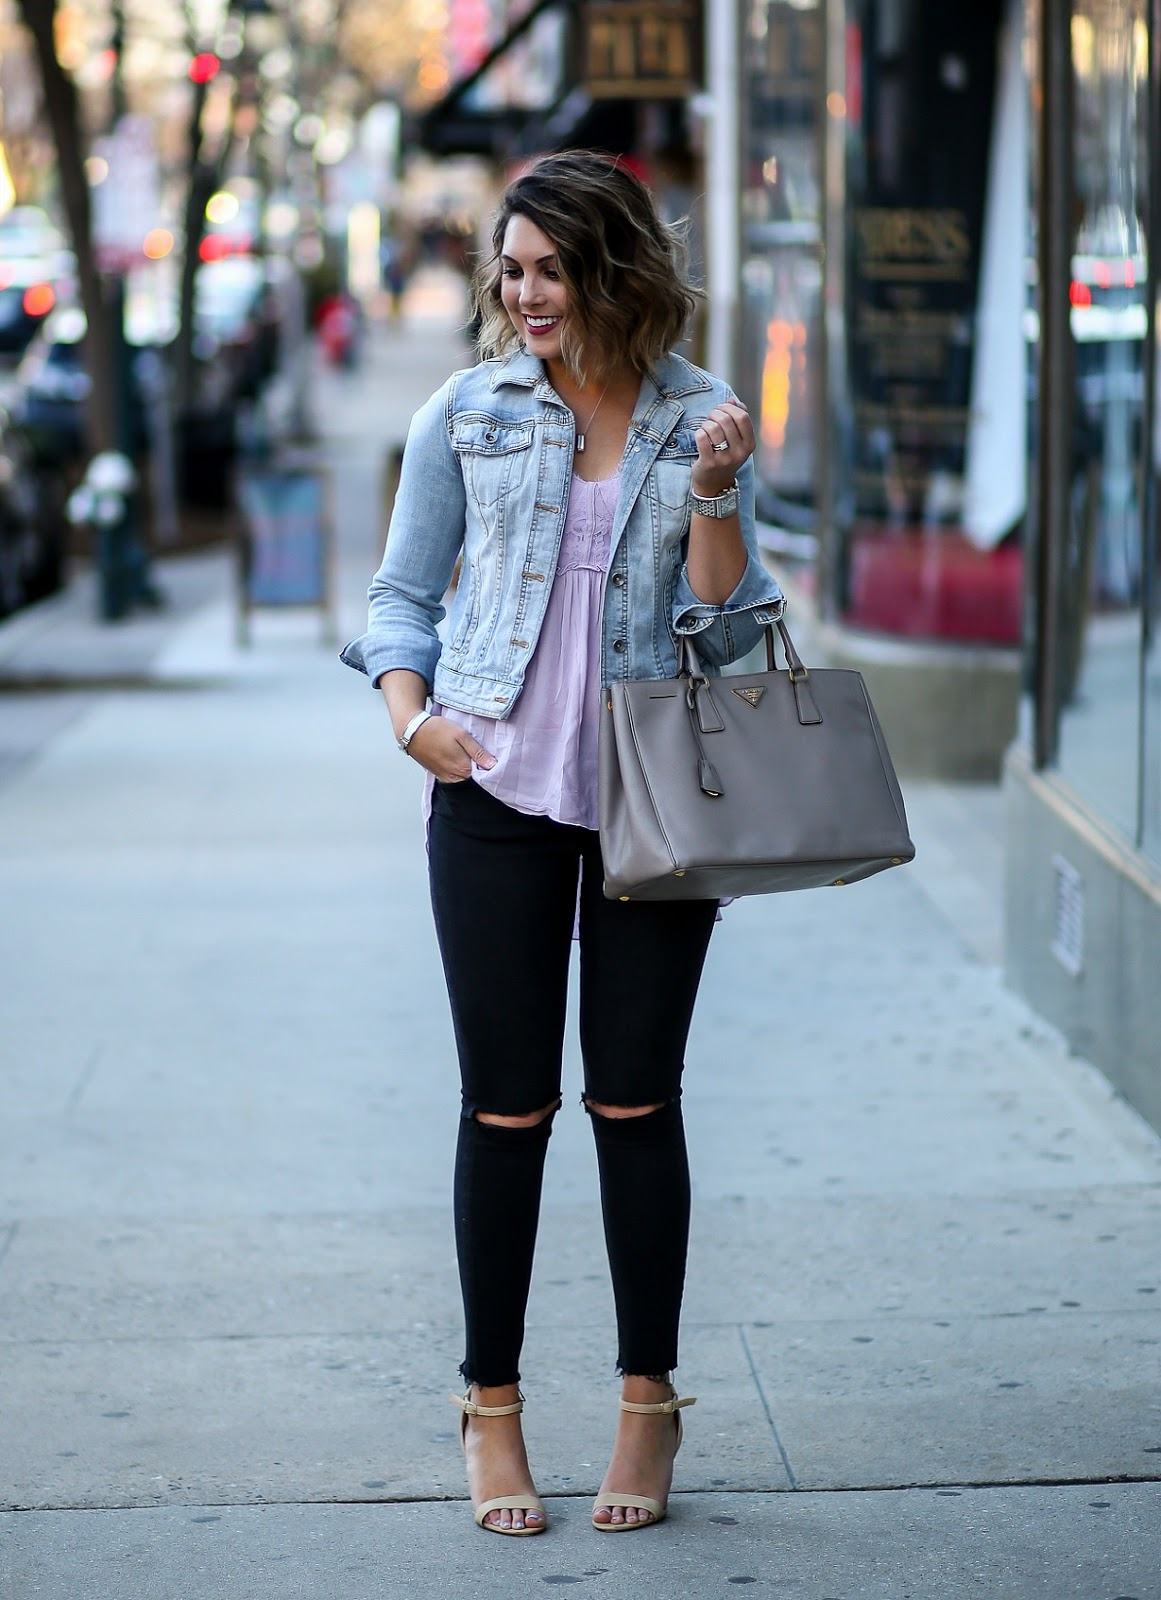 denim jacket with black jeans